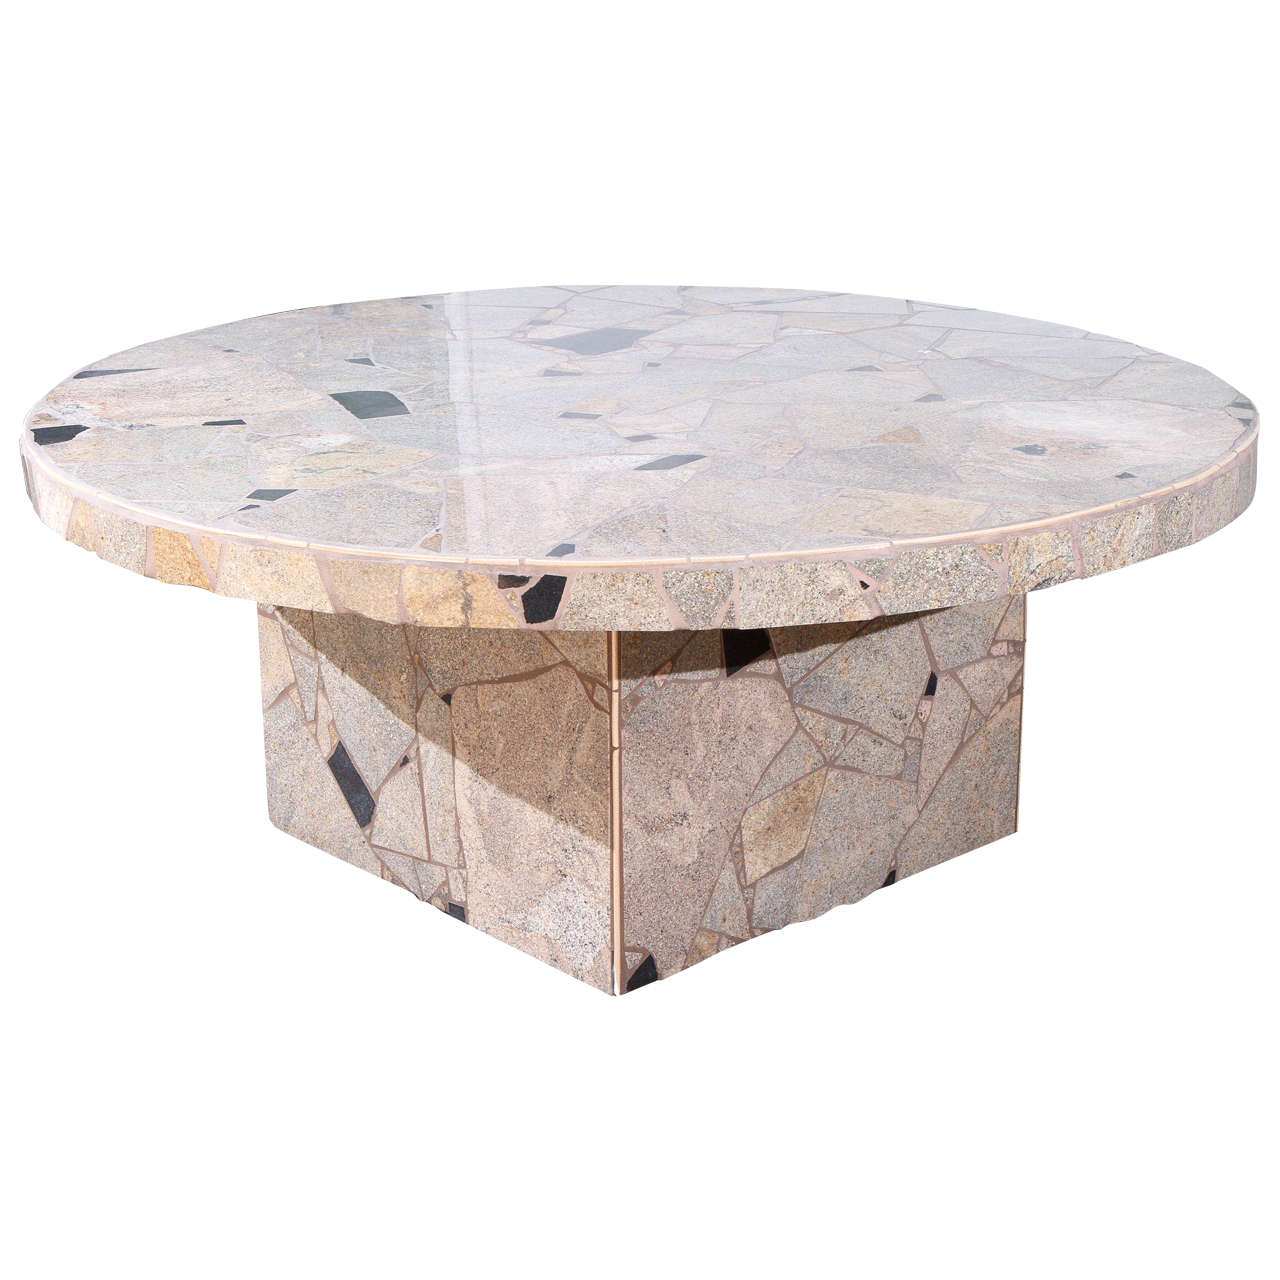 fabulous stone mosaic outdoor dining table by marlo bartels for steve chase at 1stdibs. Black Bedroom Furniture Sets. Home Design Ideas